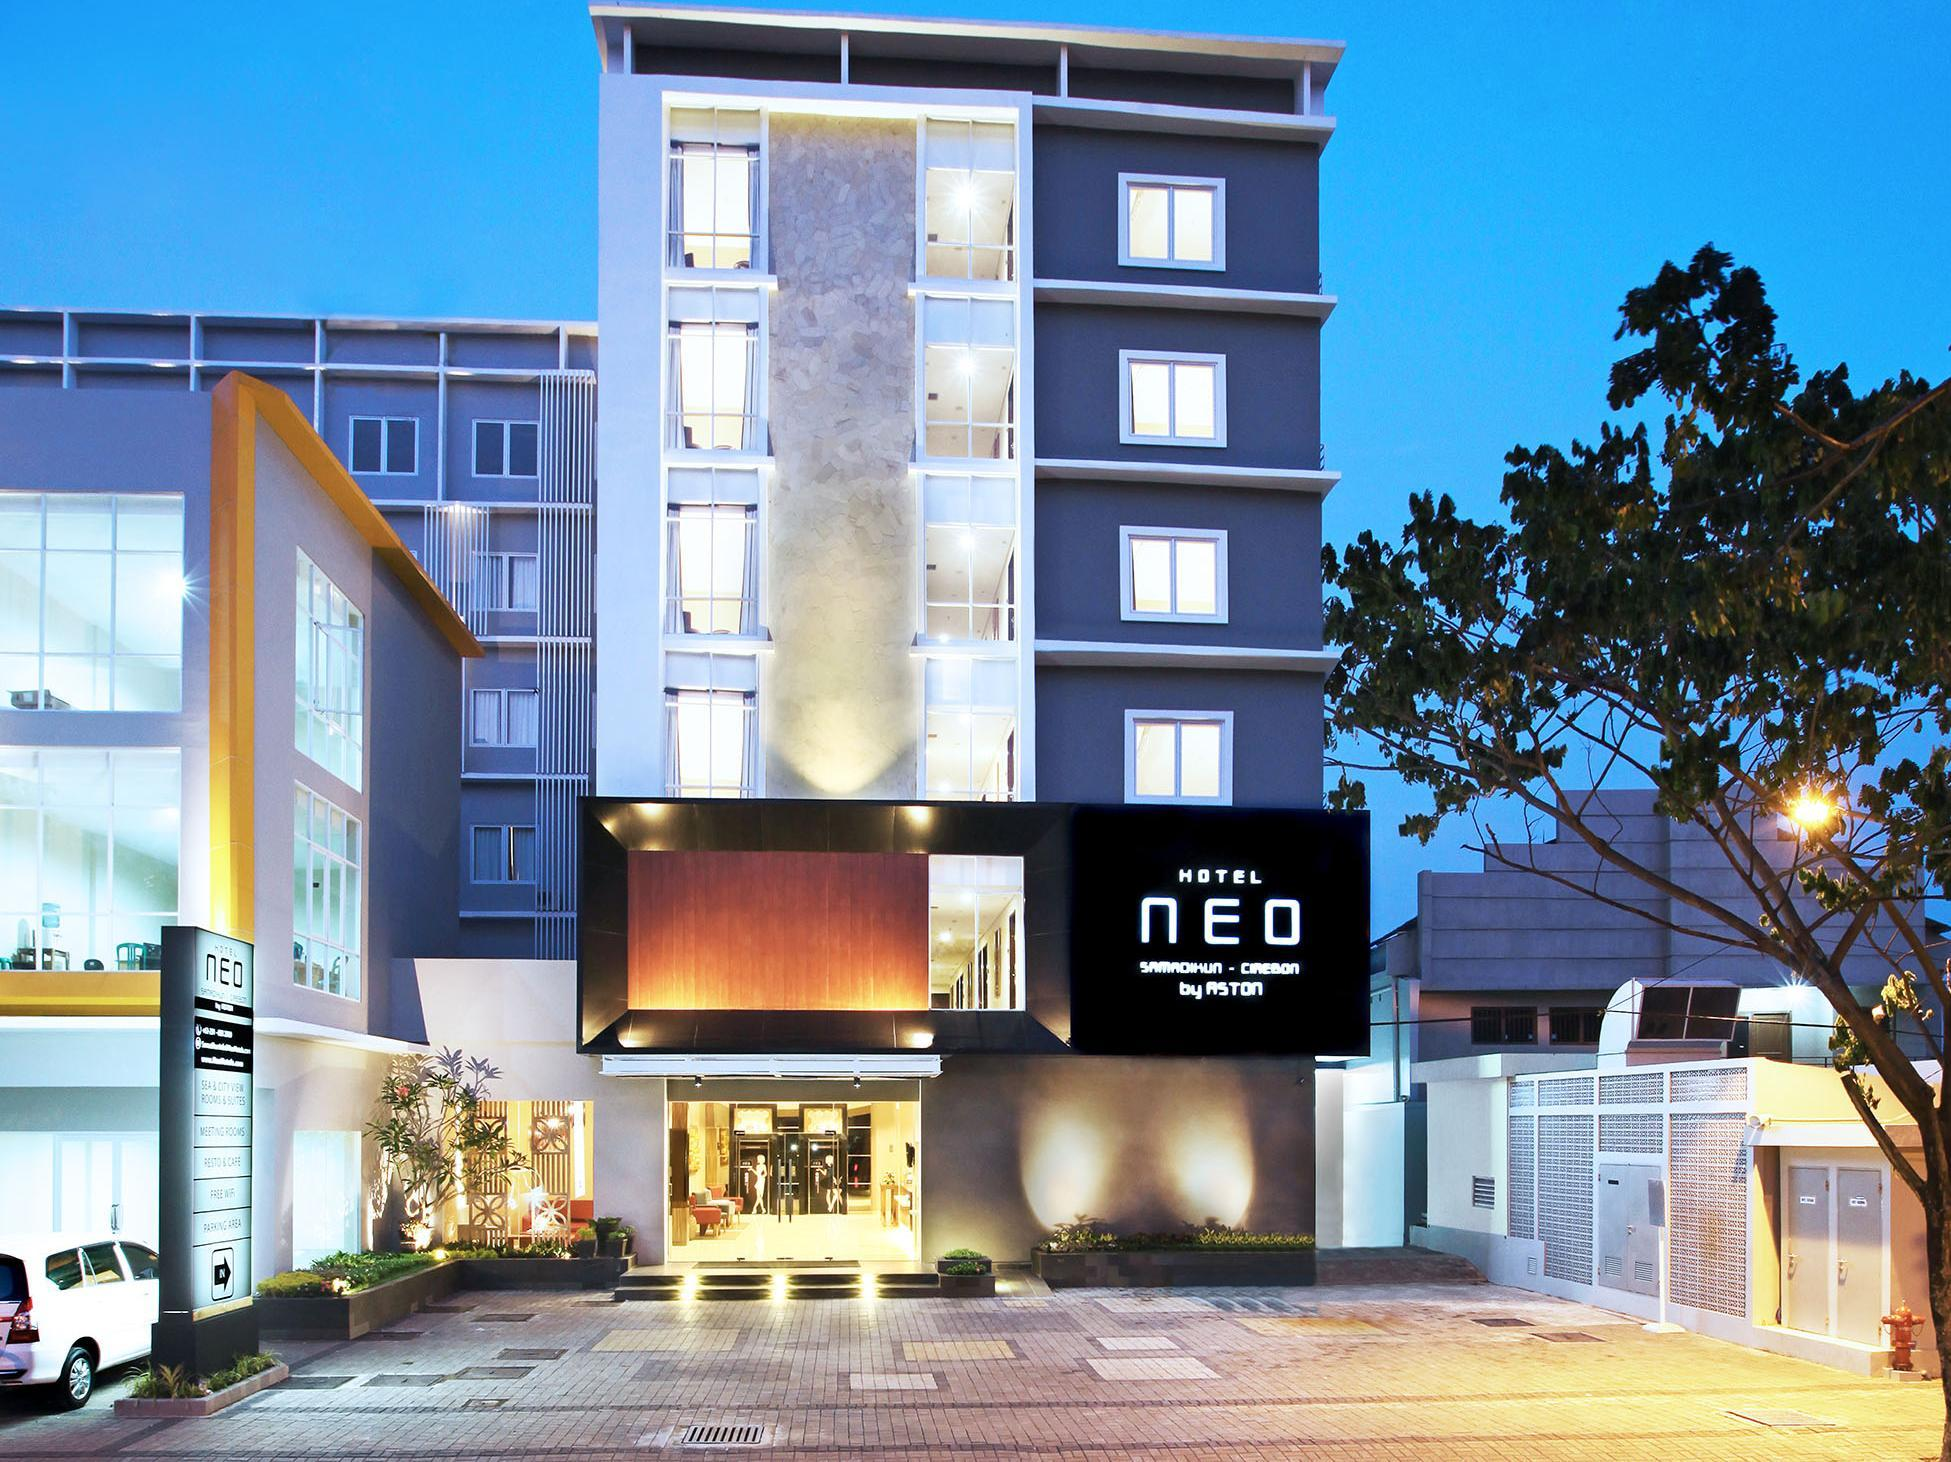 Neo Samadikun Cirebon Hotel - Hotels and Accommodation in Indonesia, Asia